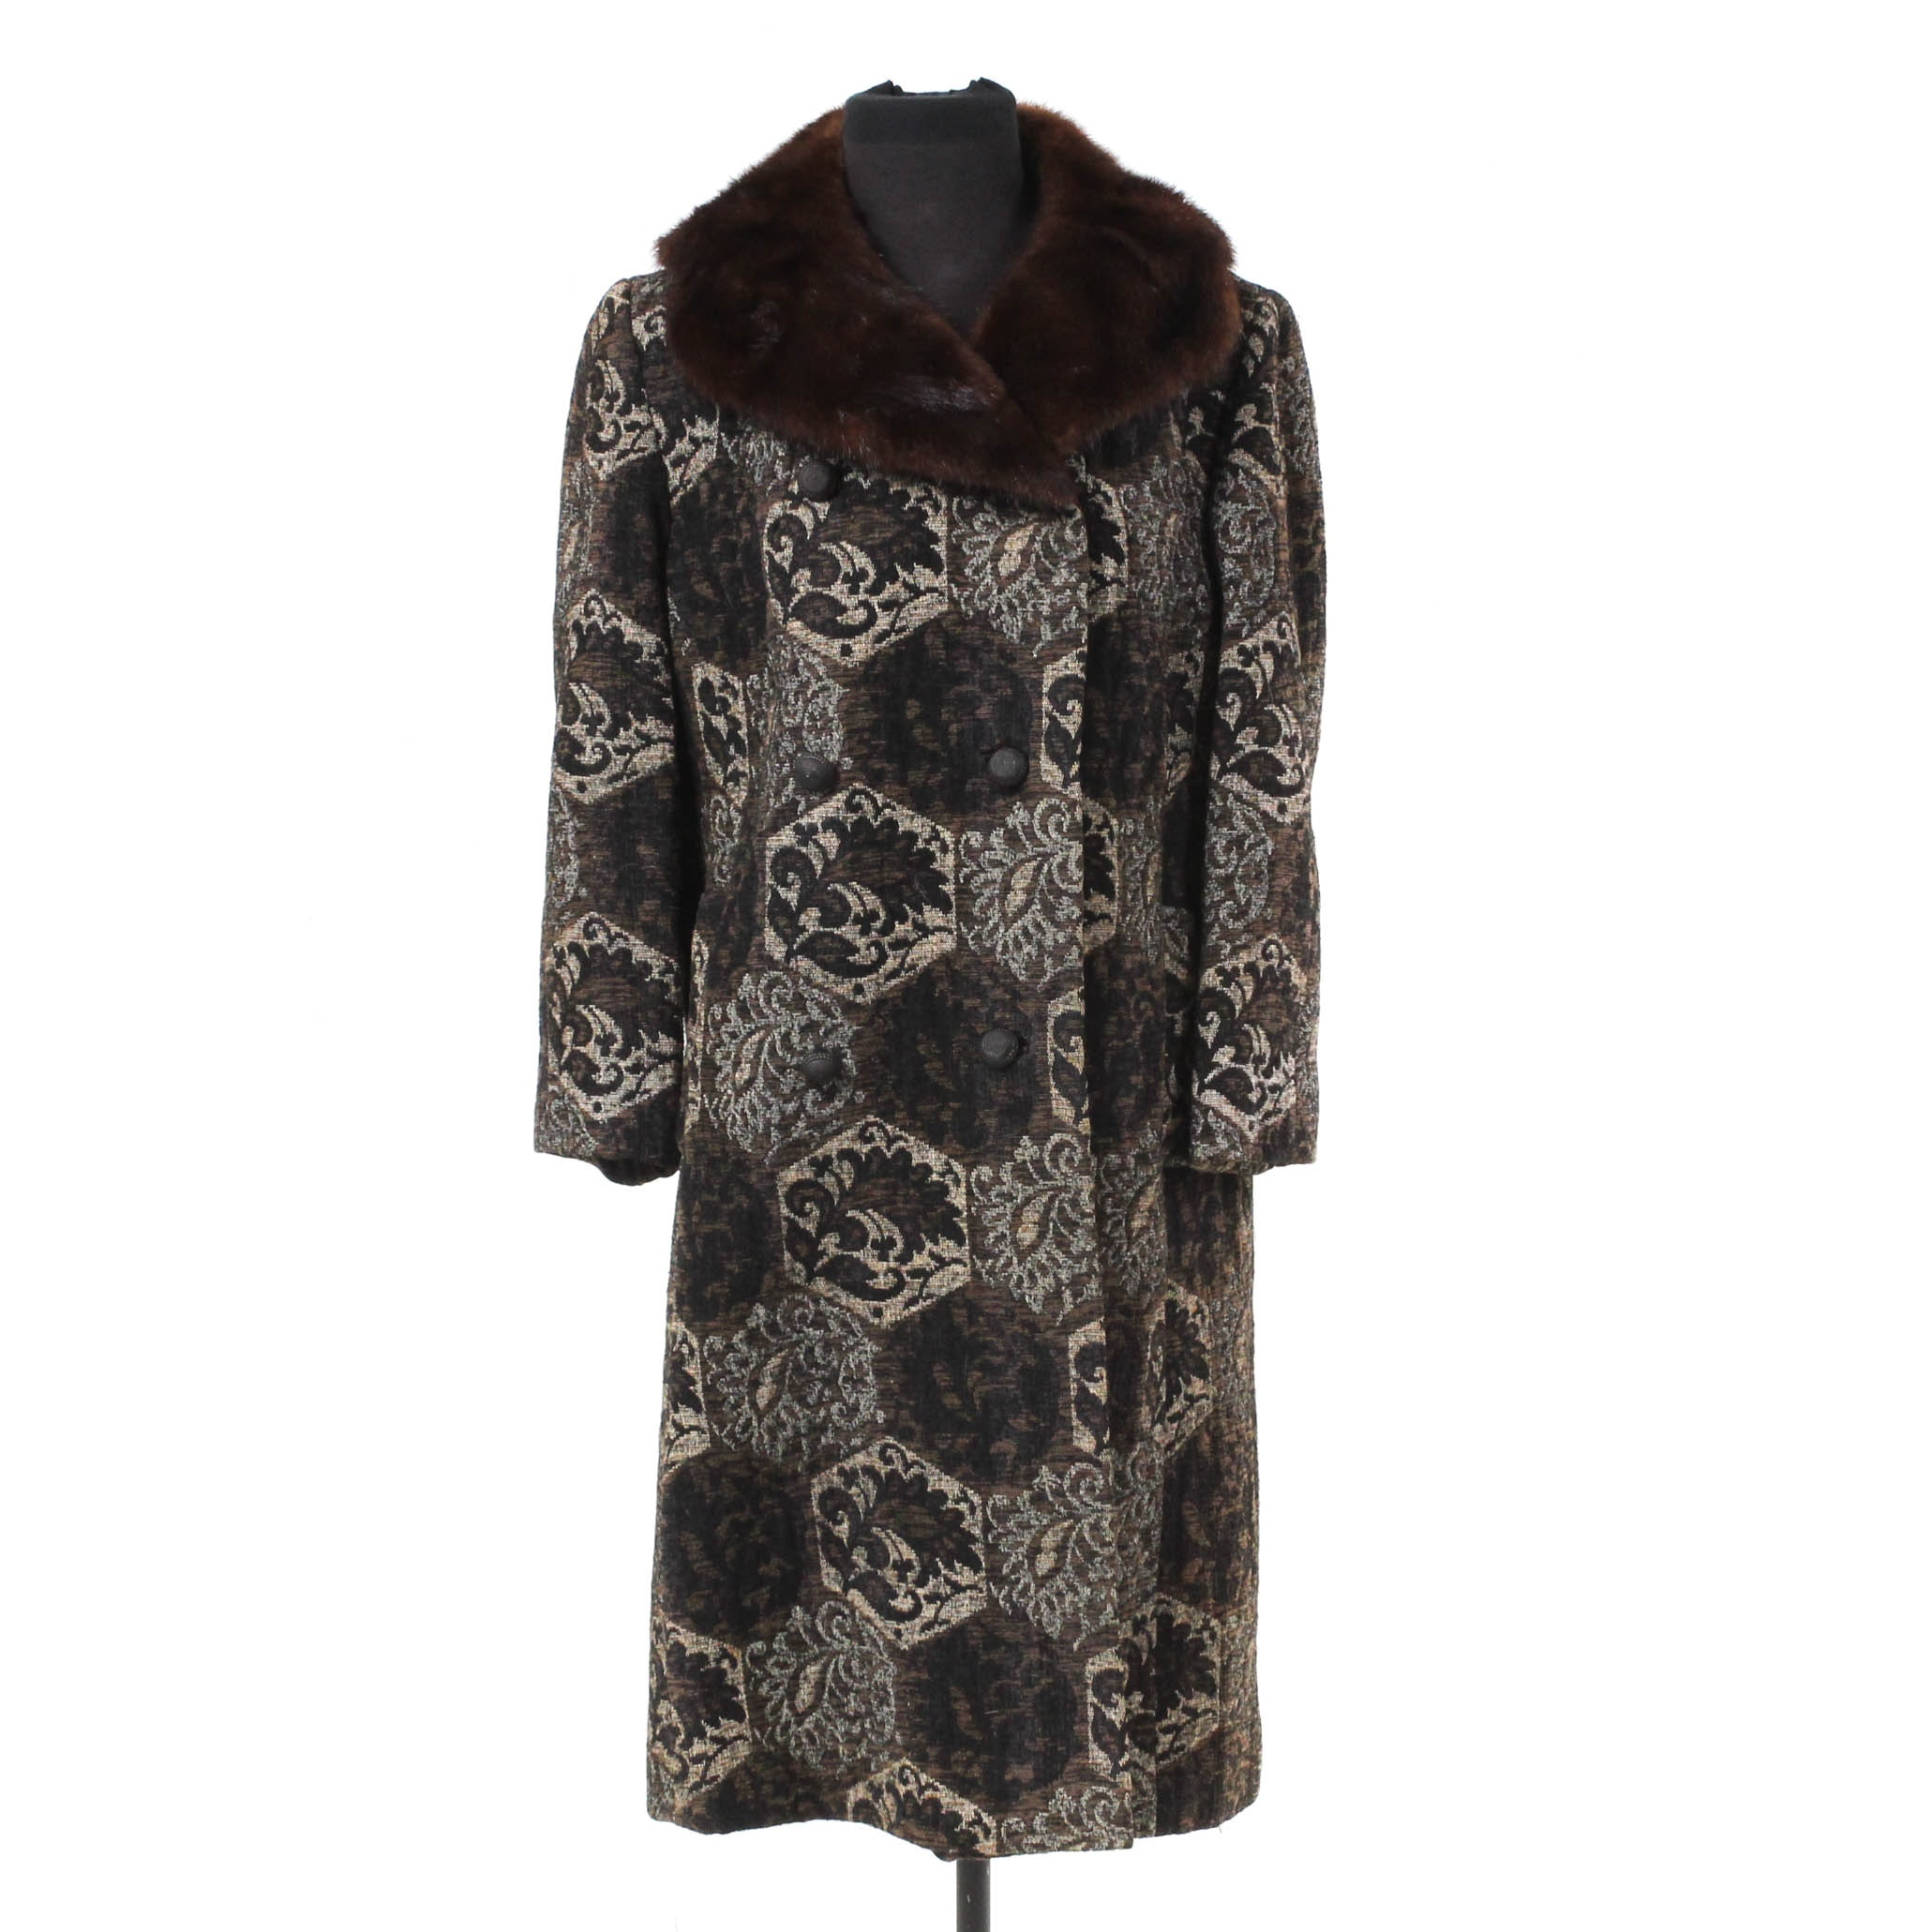 Vintage Tapestry Coat with Mahogany Mink Fur Collar